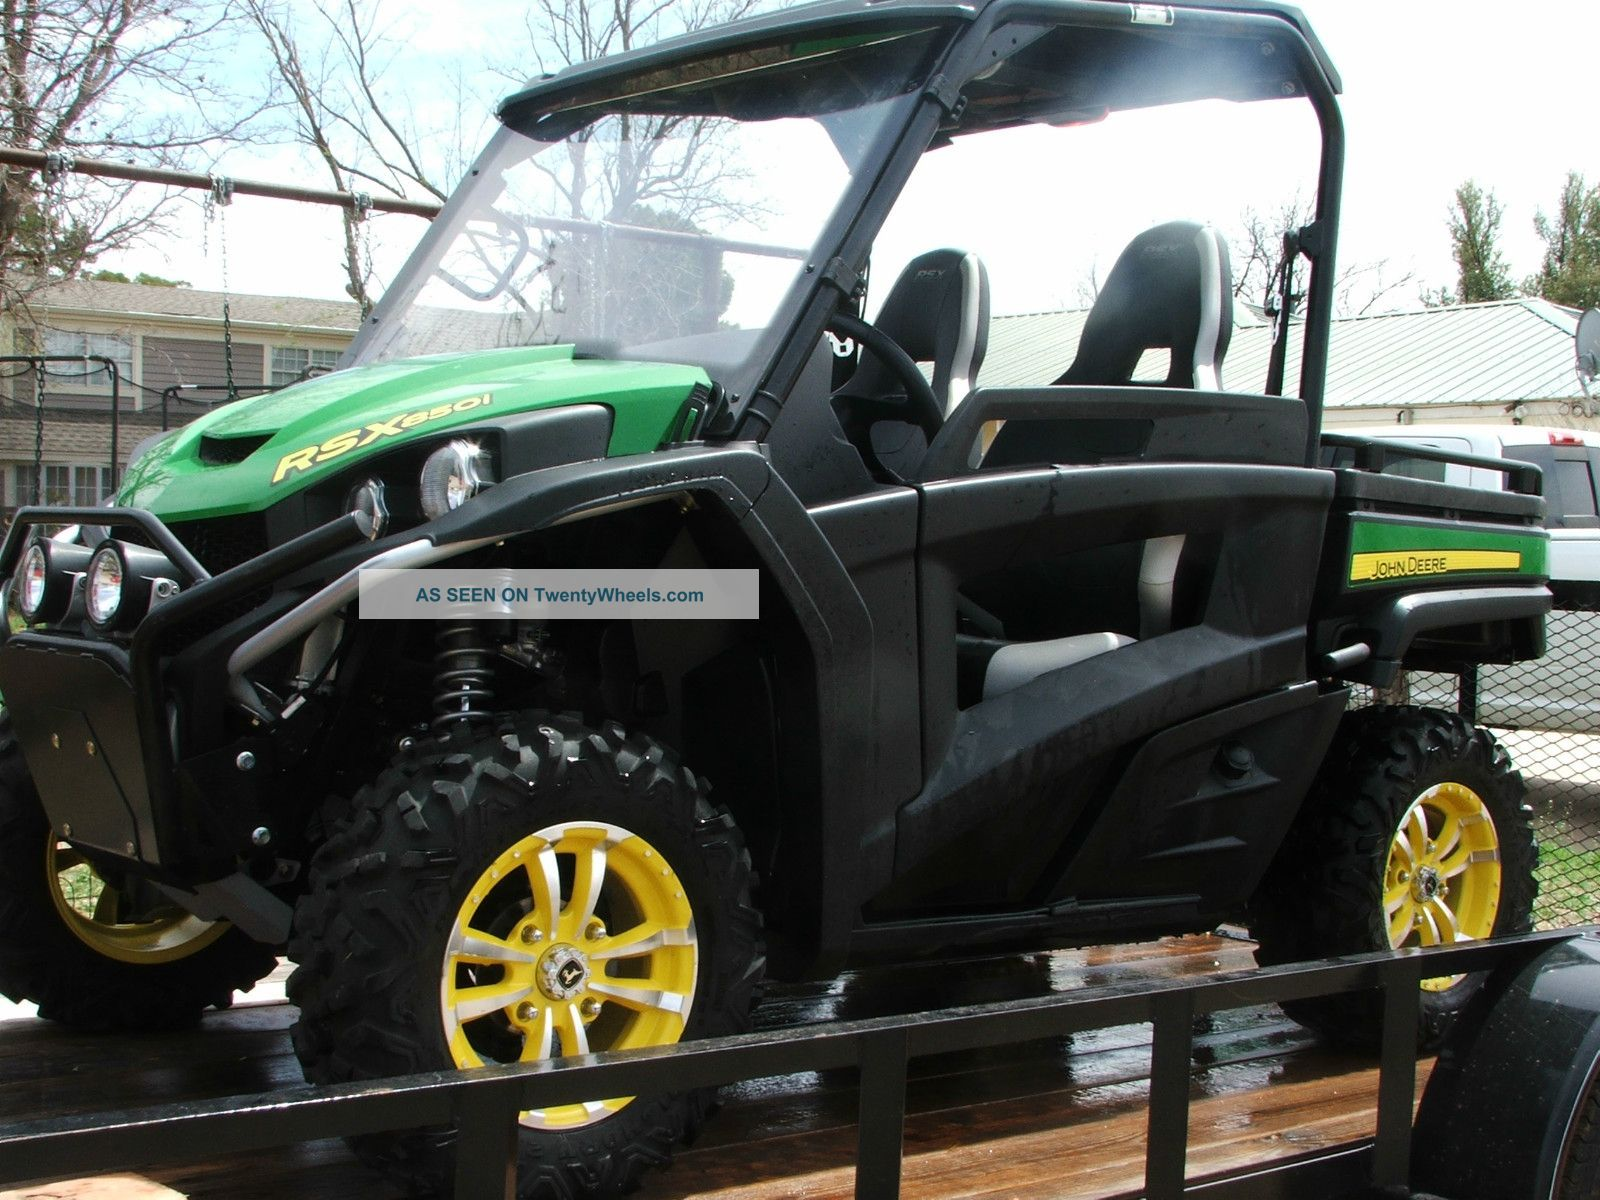 2012 John Deere Gator Rsx 850i With Lamar Trailer Utility Vehicles photo